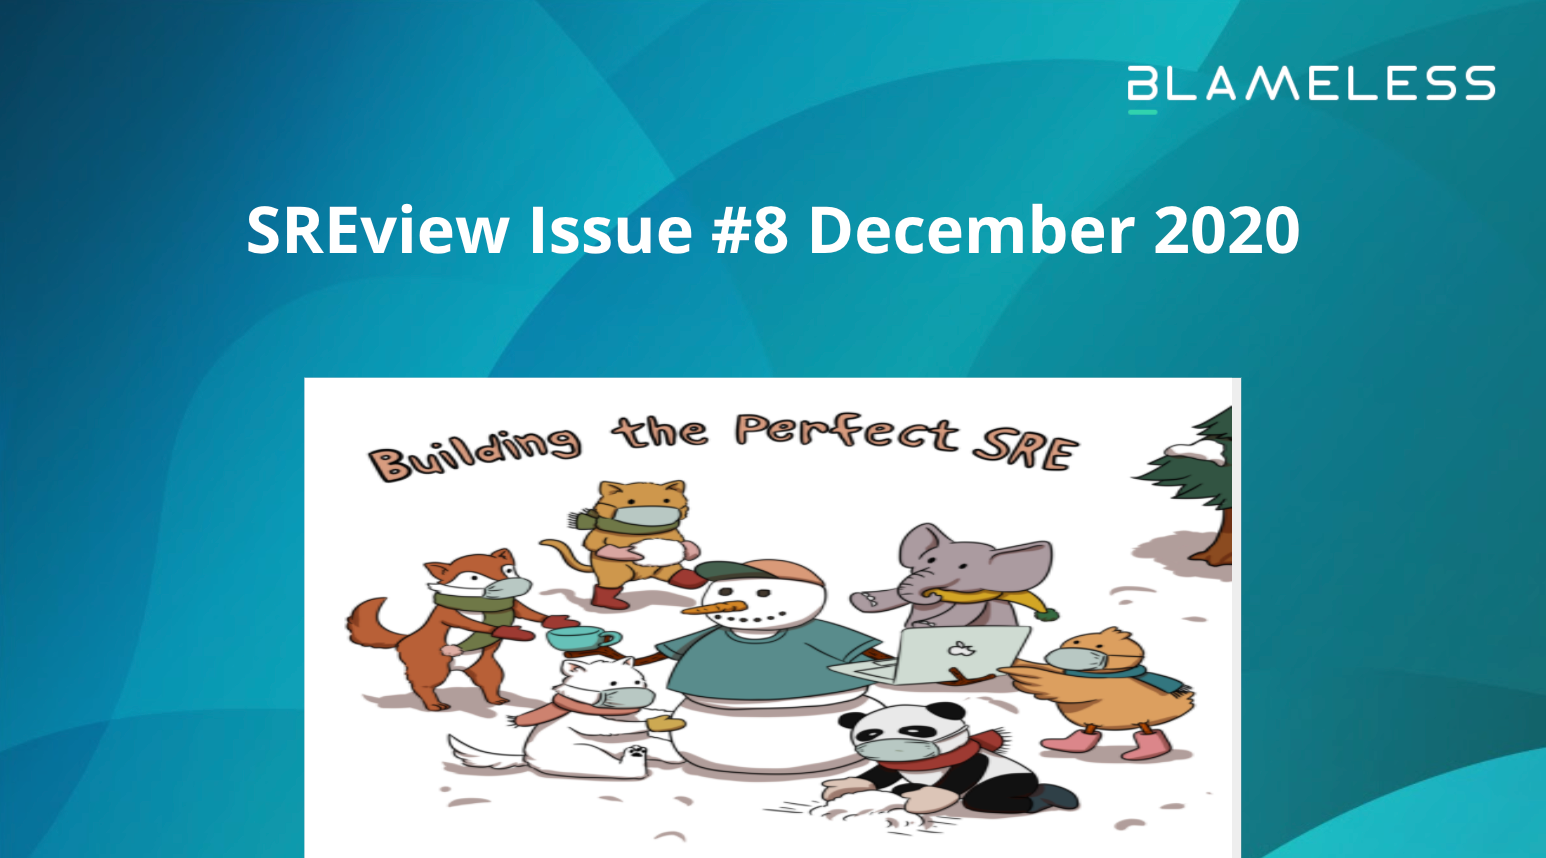 SREview Issue #8 December 2020